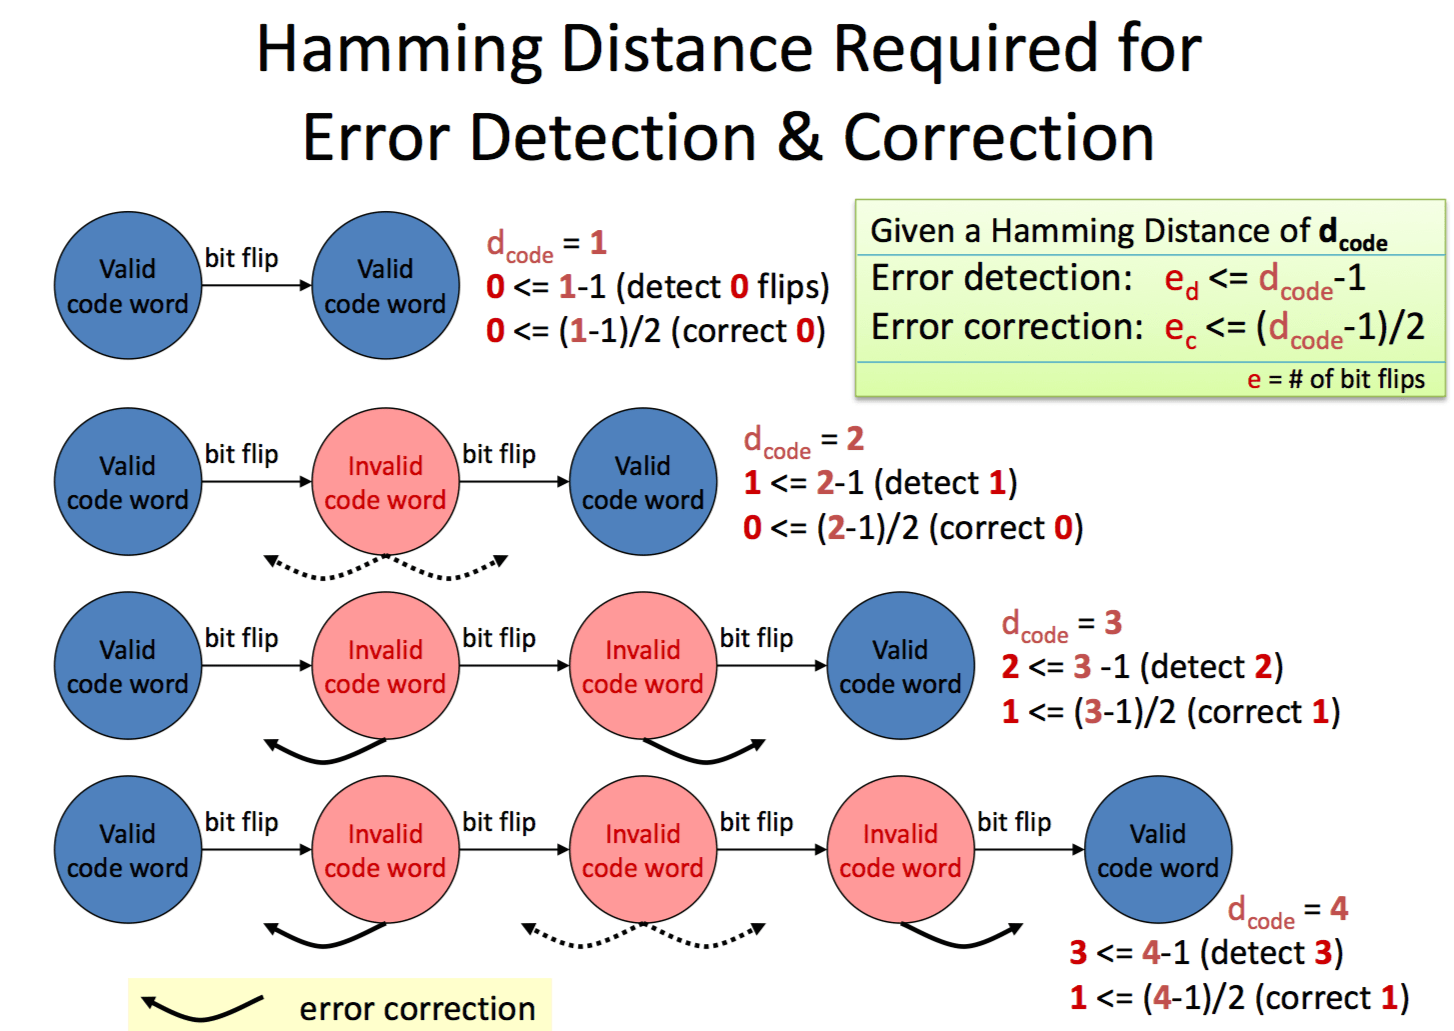 coding theory  Hamming distance required for error